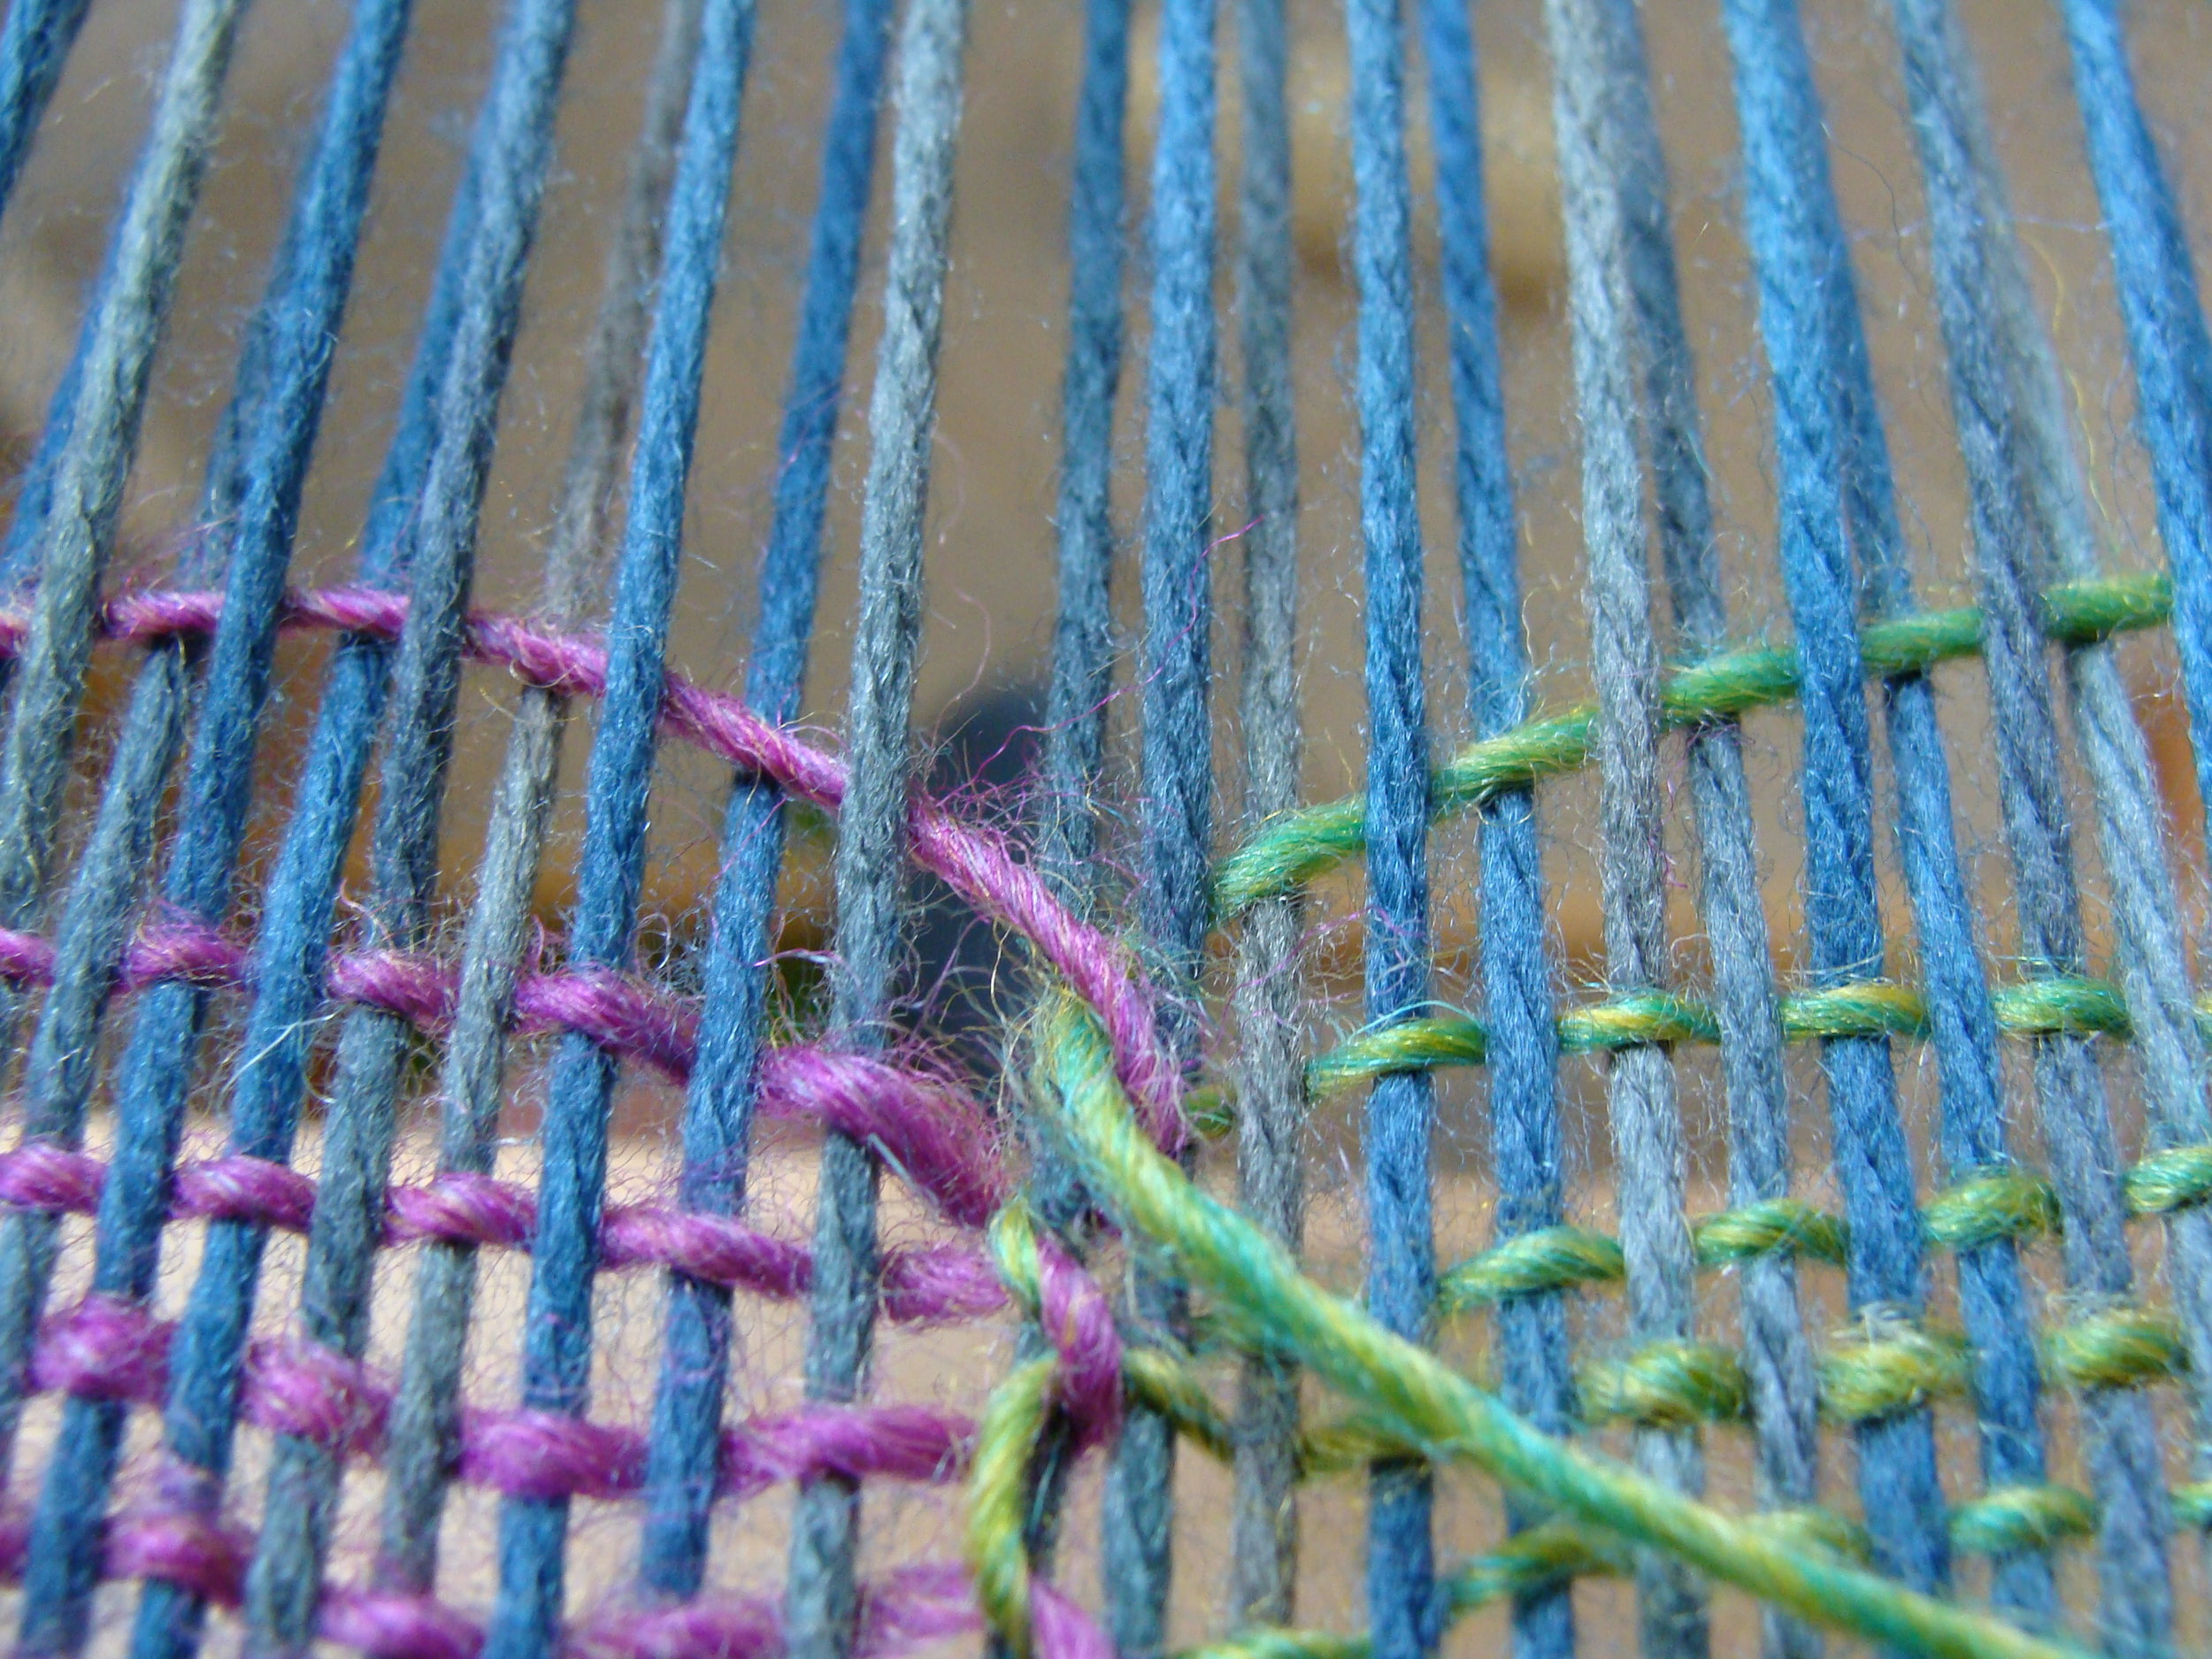 Butterfly #2 (pink) interlocks with butterfly #1 (green) and exits out the row at the selvedge.